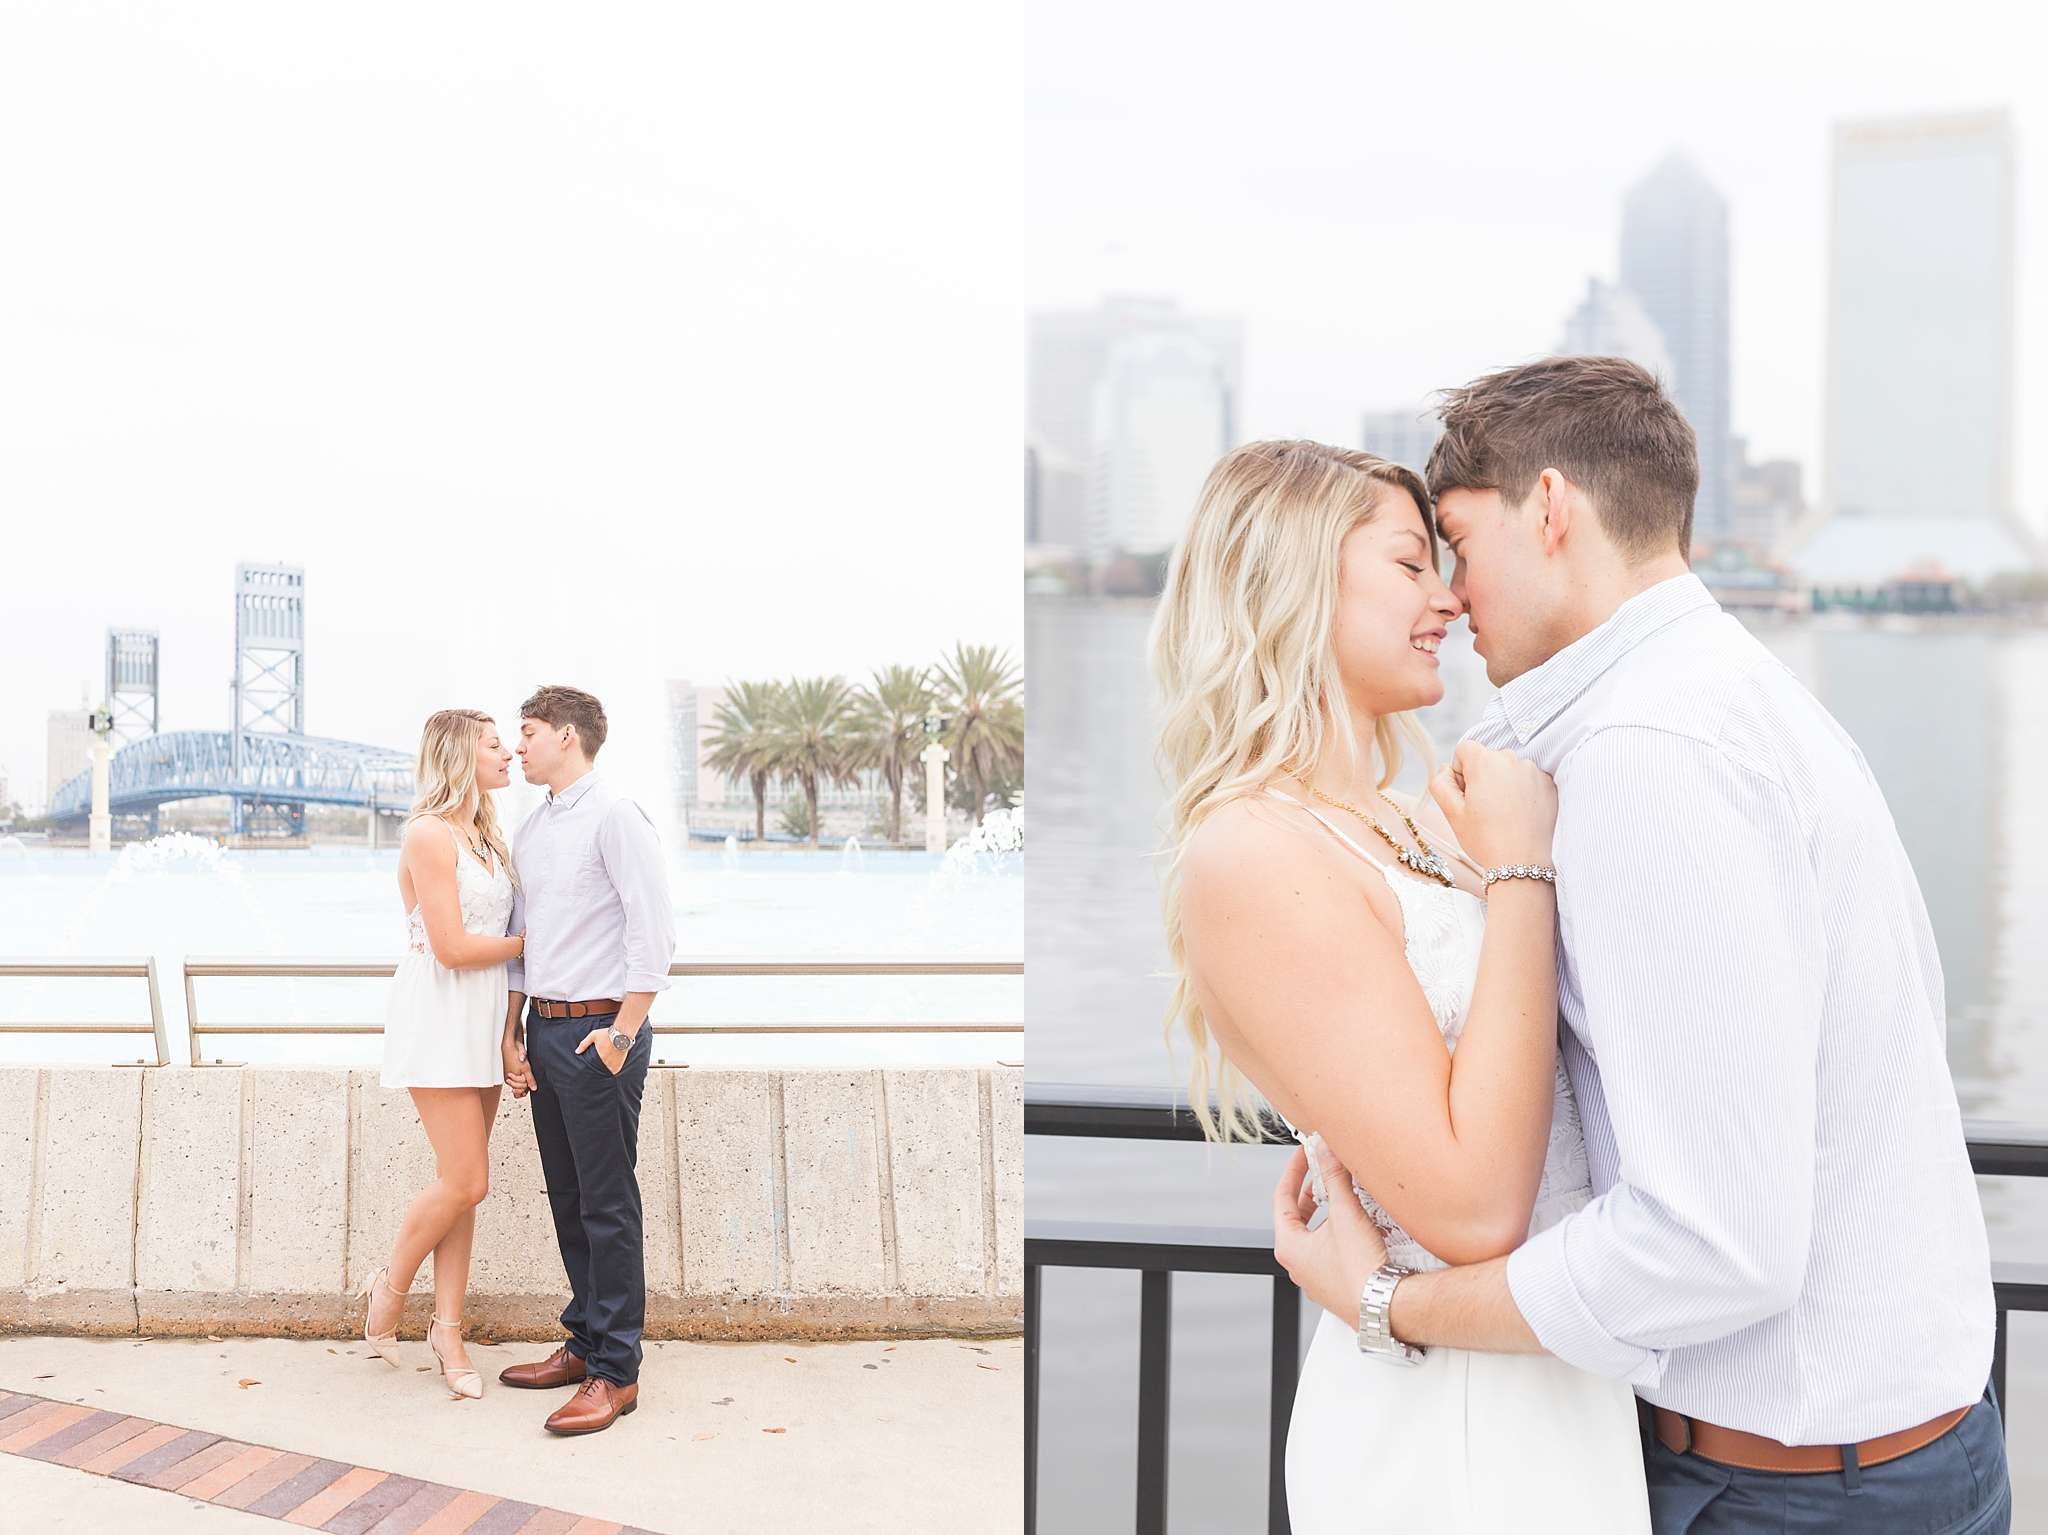 Surprise engagement session in downtown Jacksonville, FL. A surprise proposal taken place on top of buildings, and skyscrapers in Florida urban area.